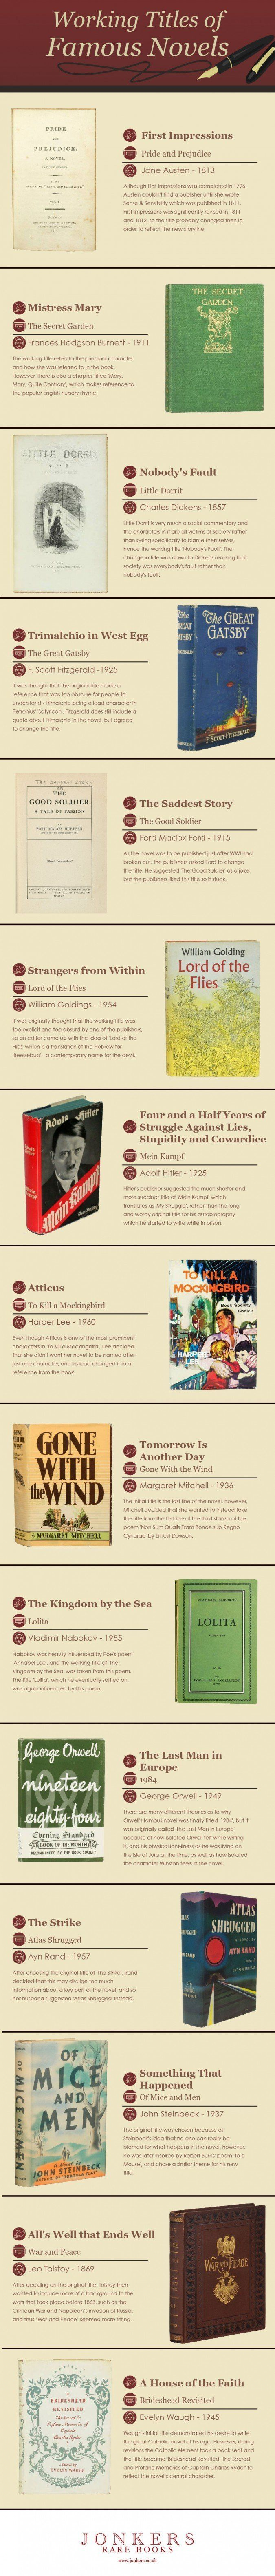 "<a href=""https://www.jonkers.co.uk/blog/working-titles-of-famous-novels"" target=""_blank"">This Jonkers infographic</a>&nbsp;te"